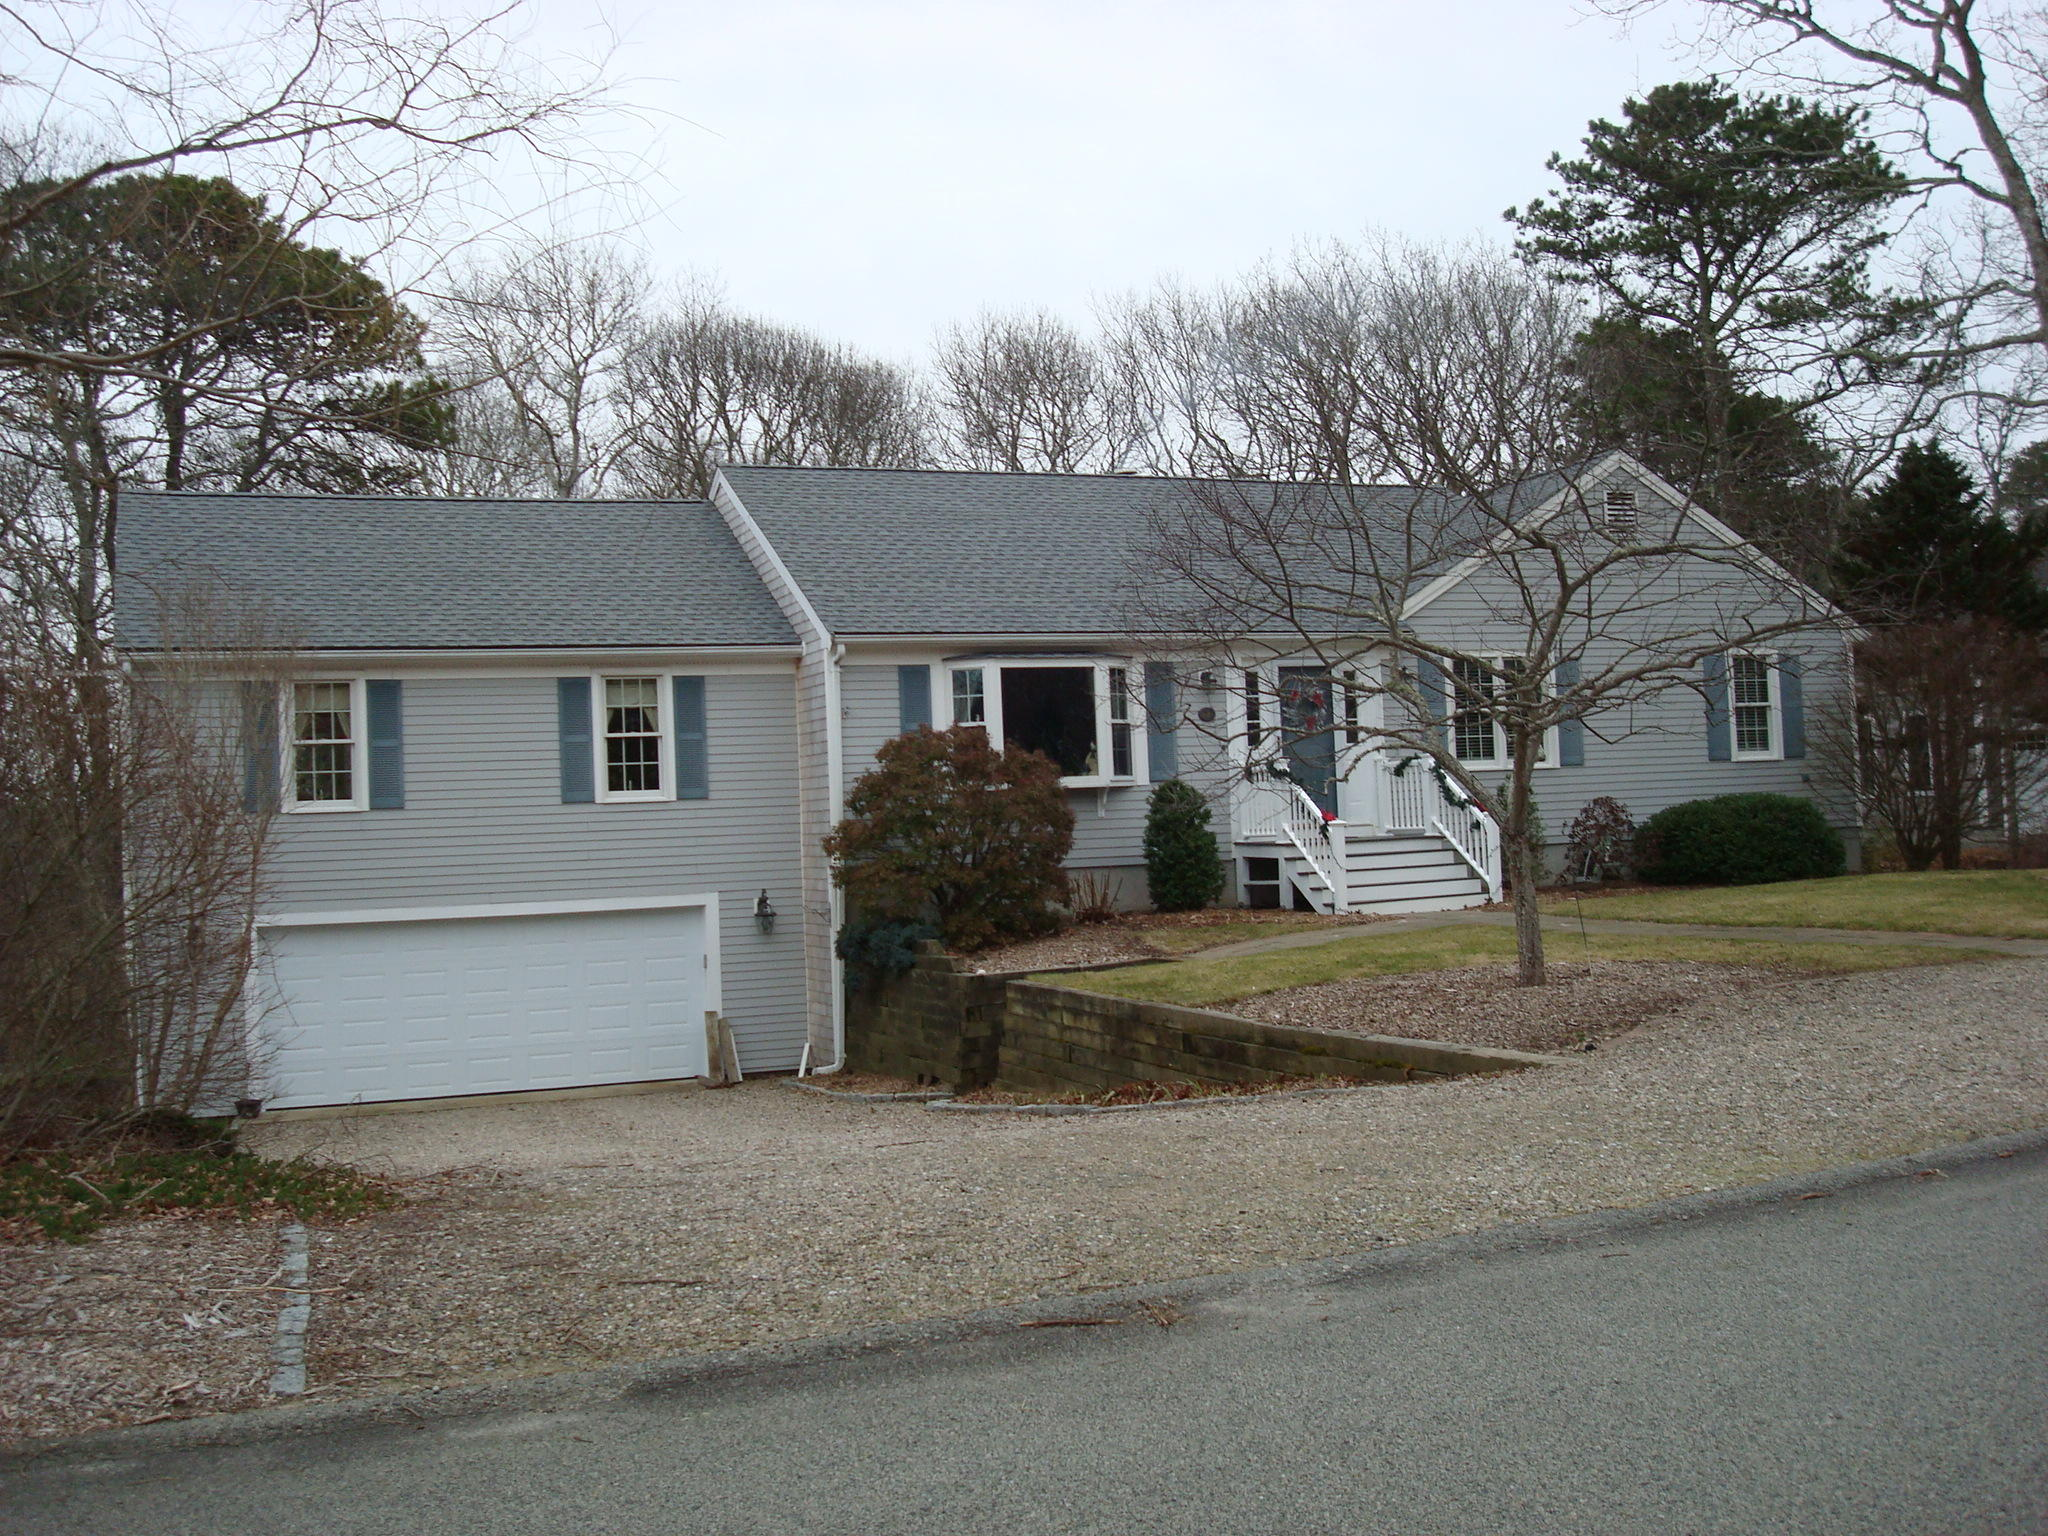 60 SpyGlass Hill Road, Barnstable MA, 02630 details